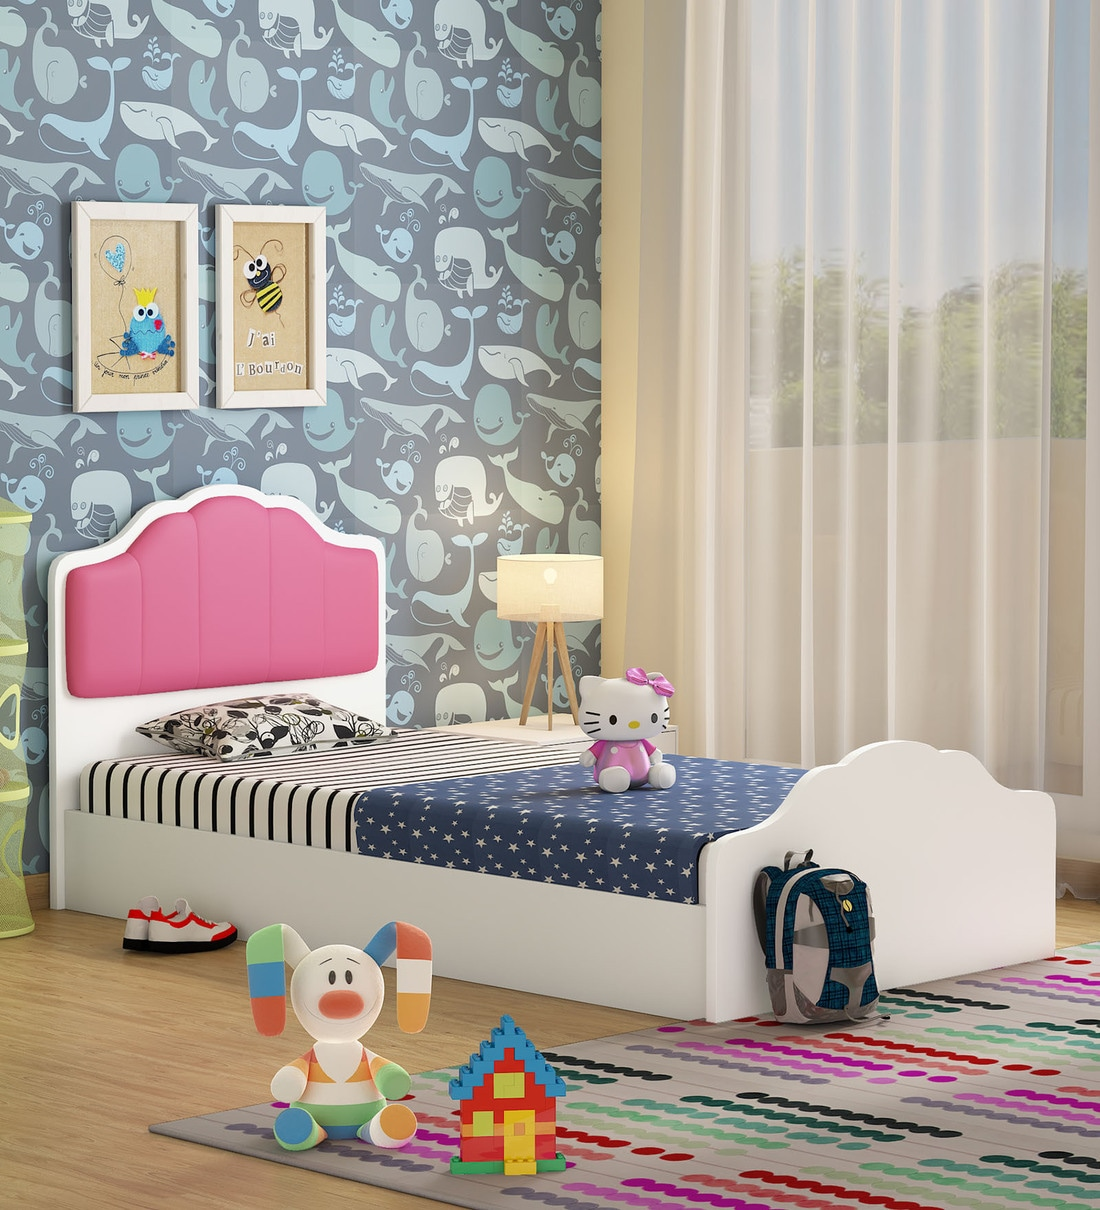 Buy Princess Single Bed In White Pink Finish By Mintwud Online Kids Single Beds Kids Single Beds Kids Furniture Pepperfry Product